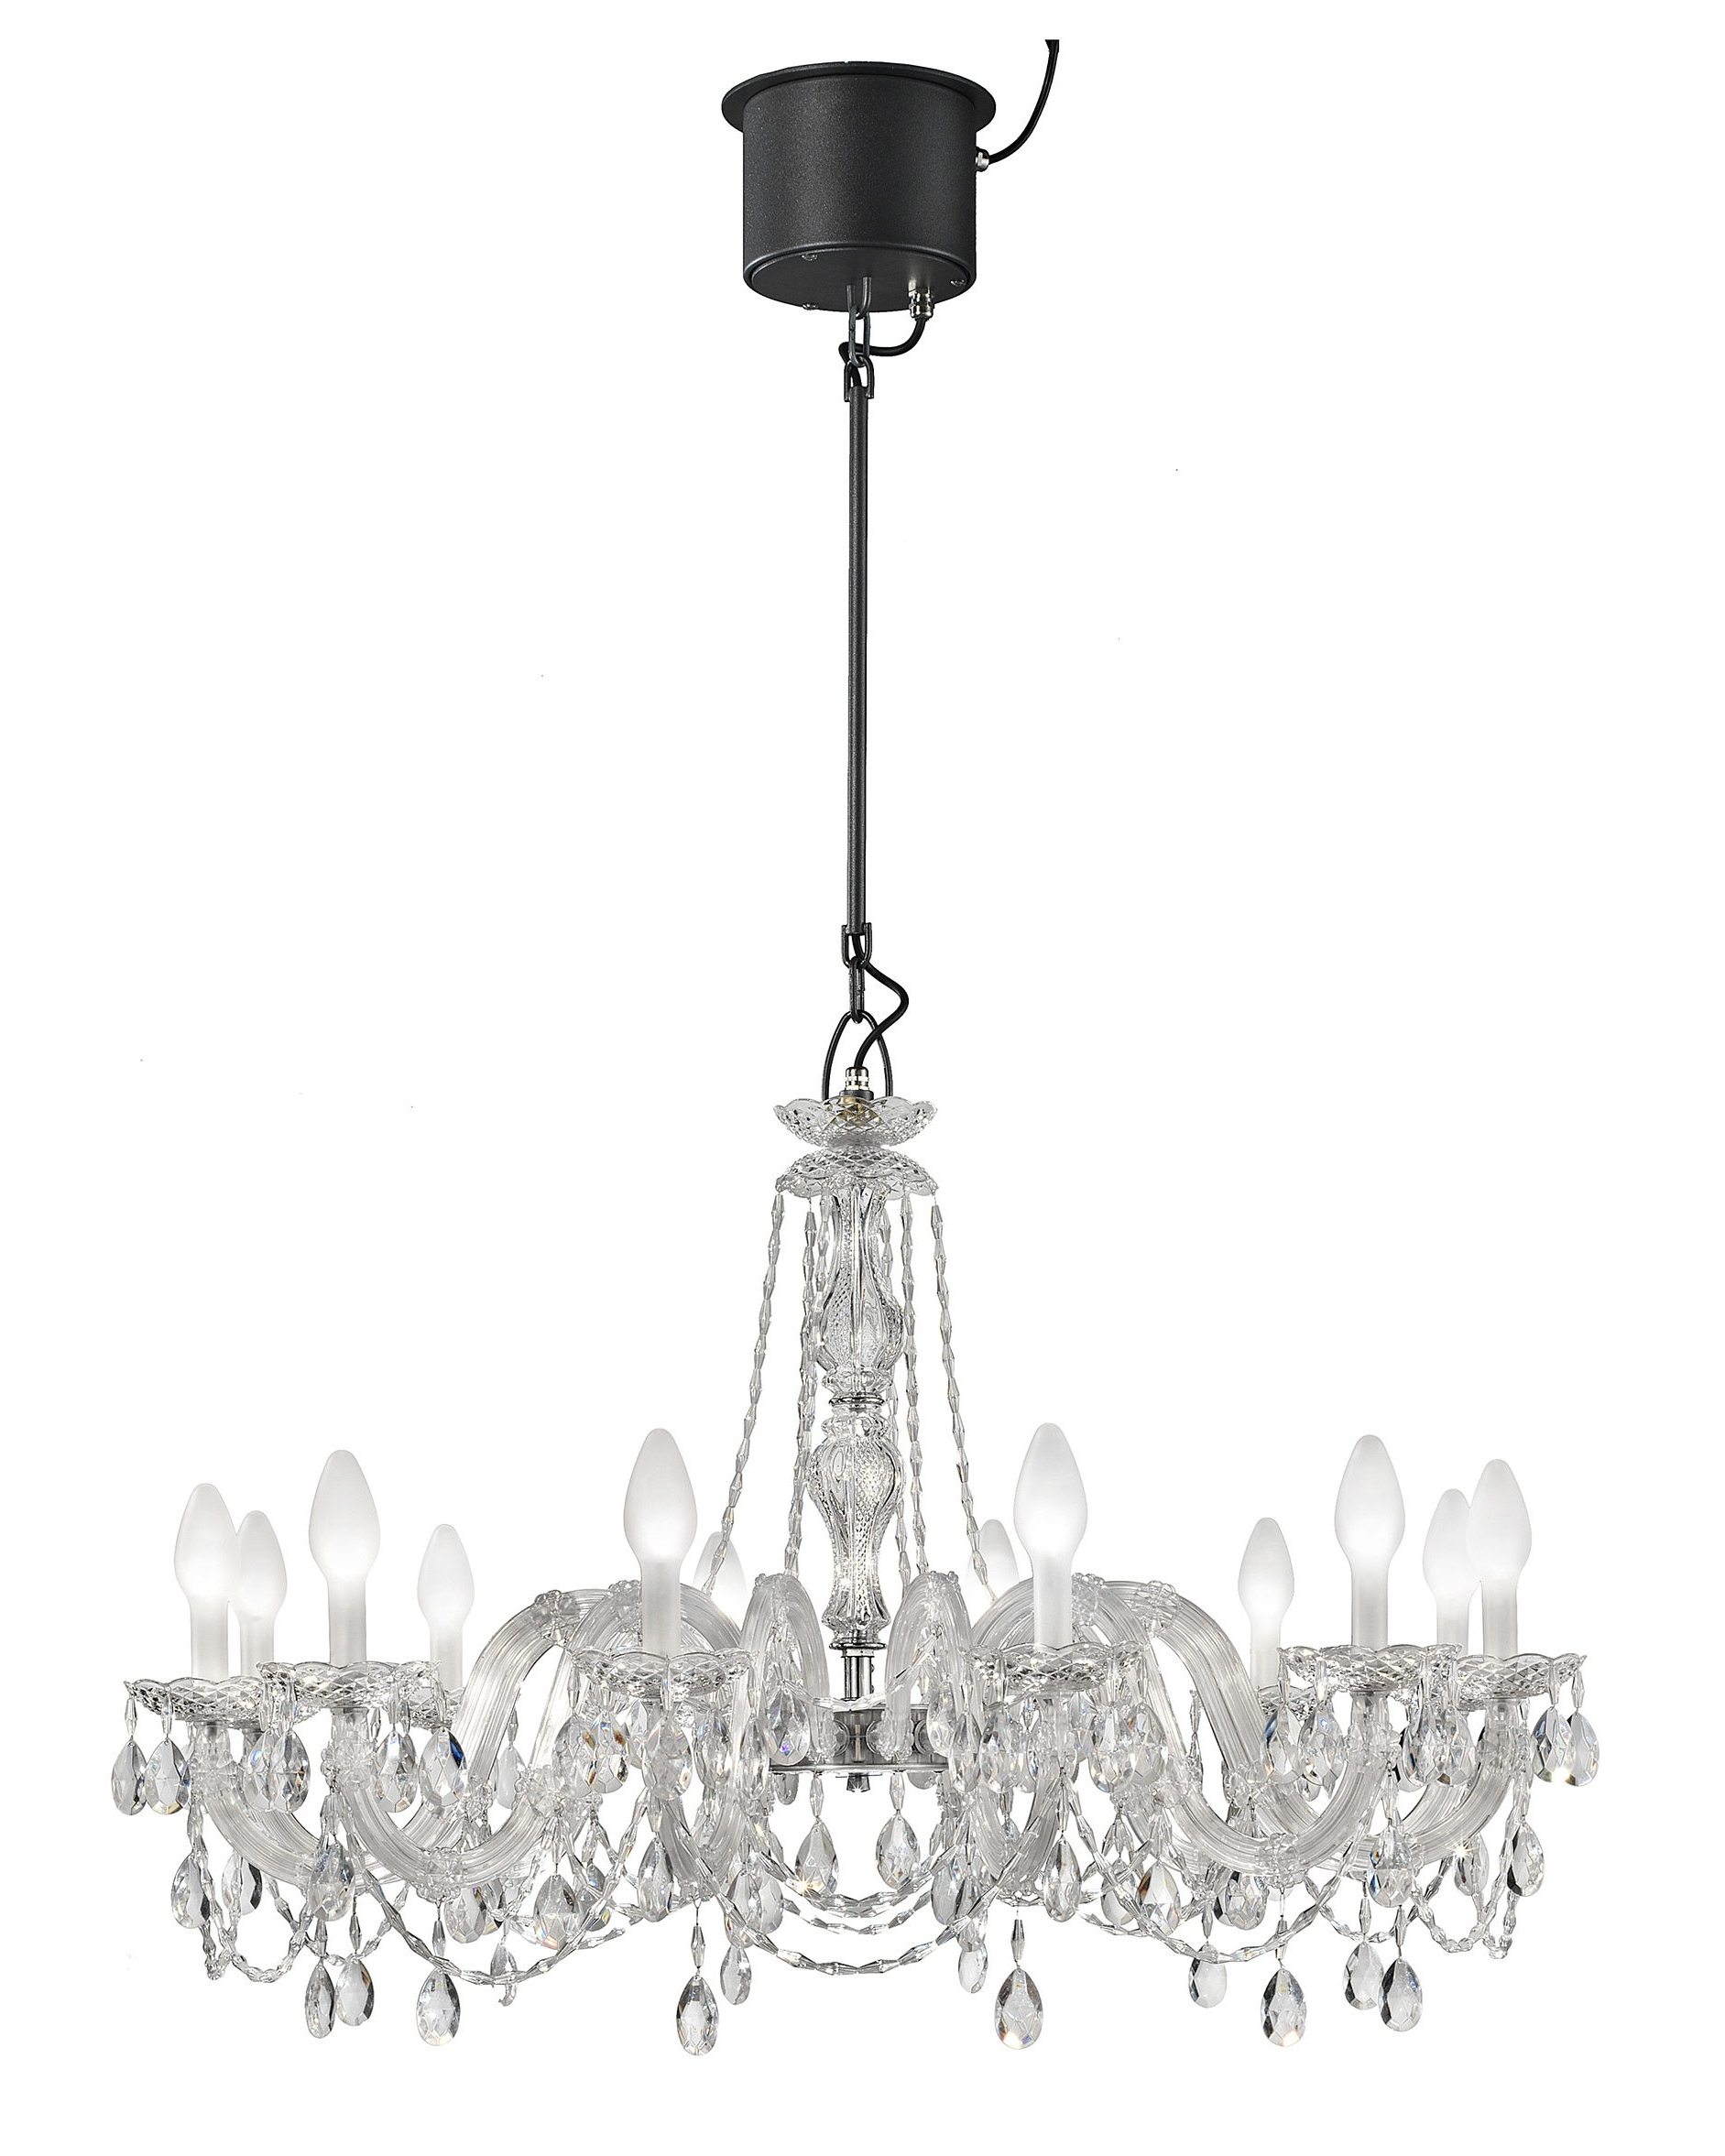 Best And Newest Light Fitting Chandeliers Pertaining To Modern Light Fixtures & Luxury Lighting (View 8 of 15)